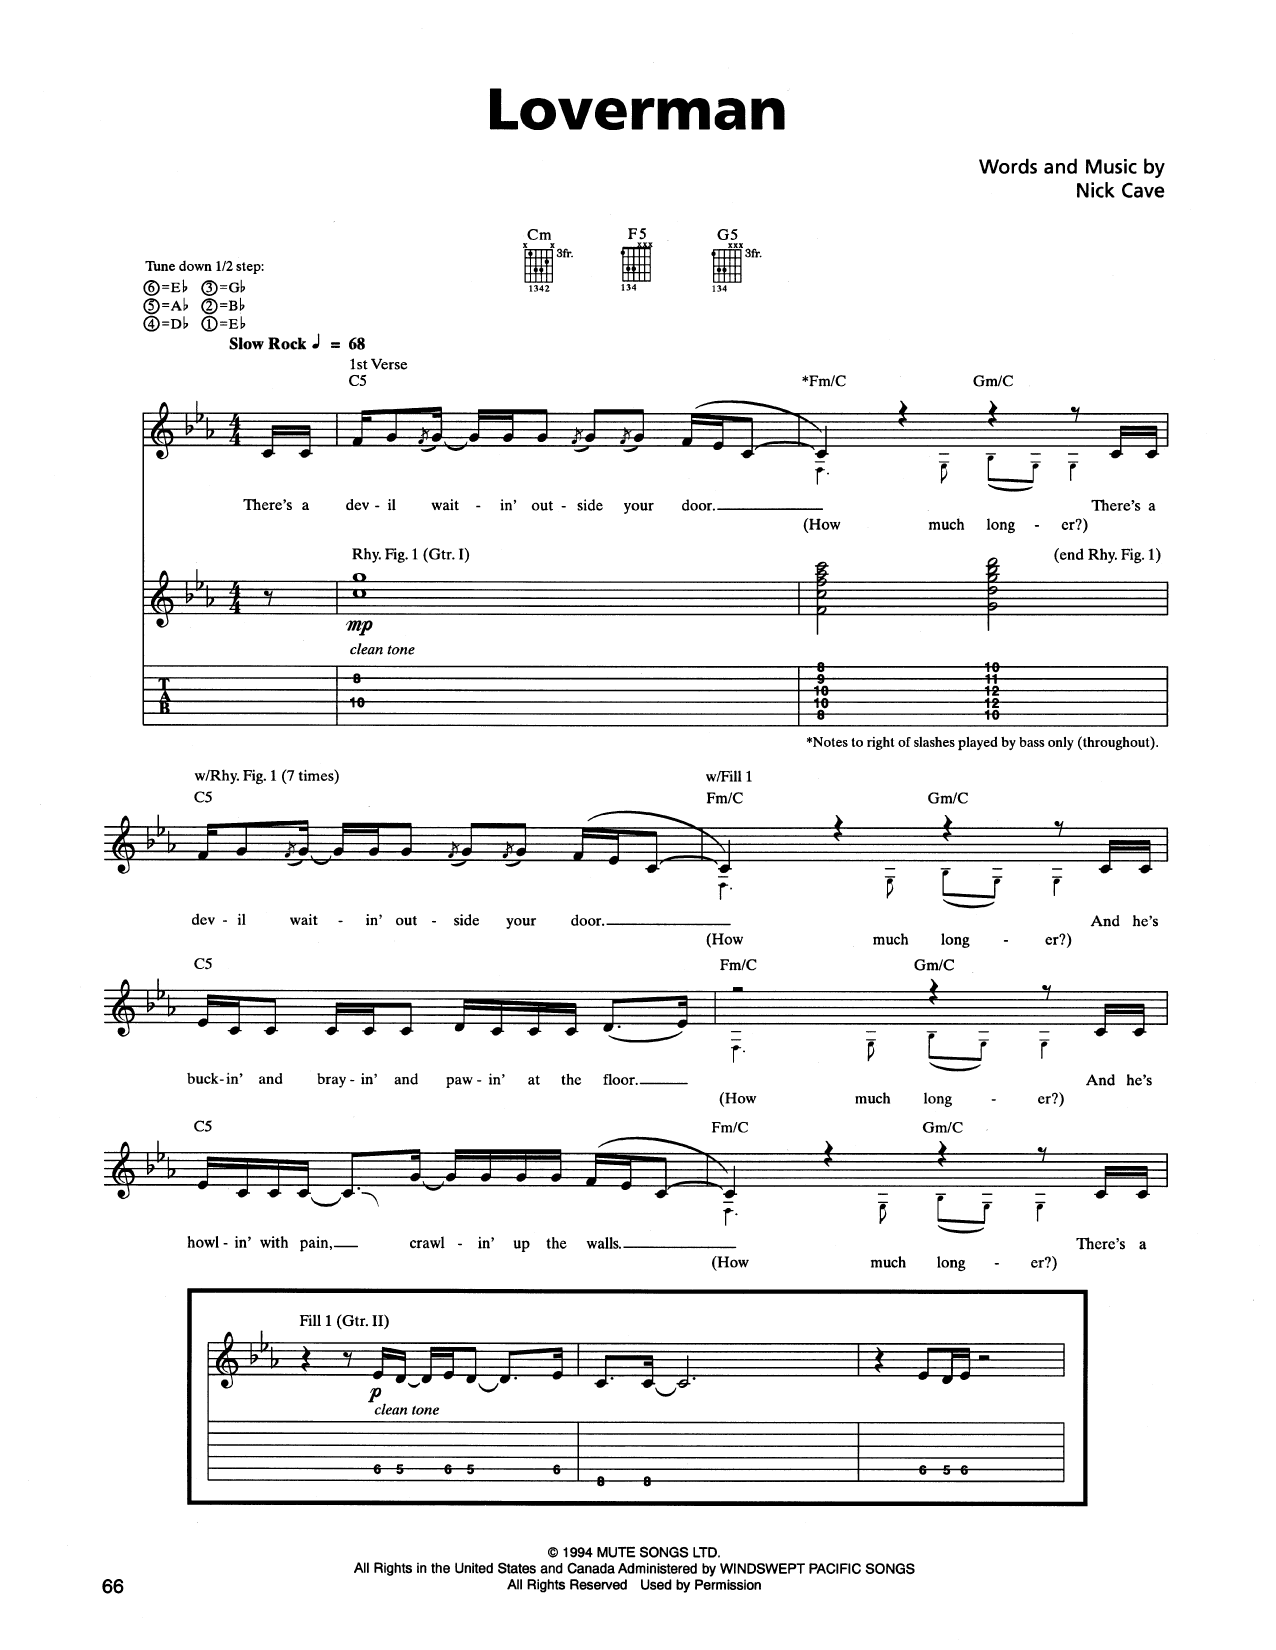 Loverman Sheet Music